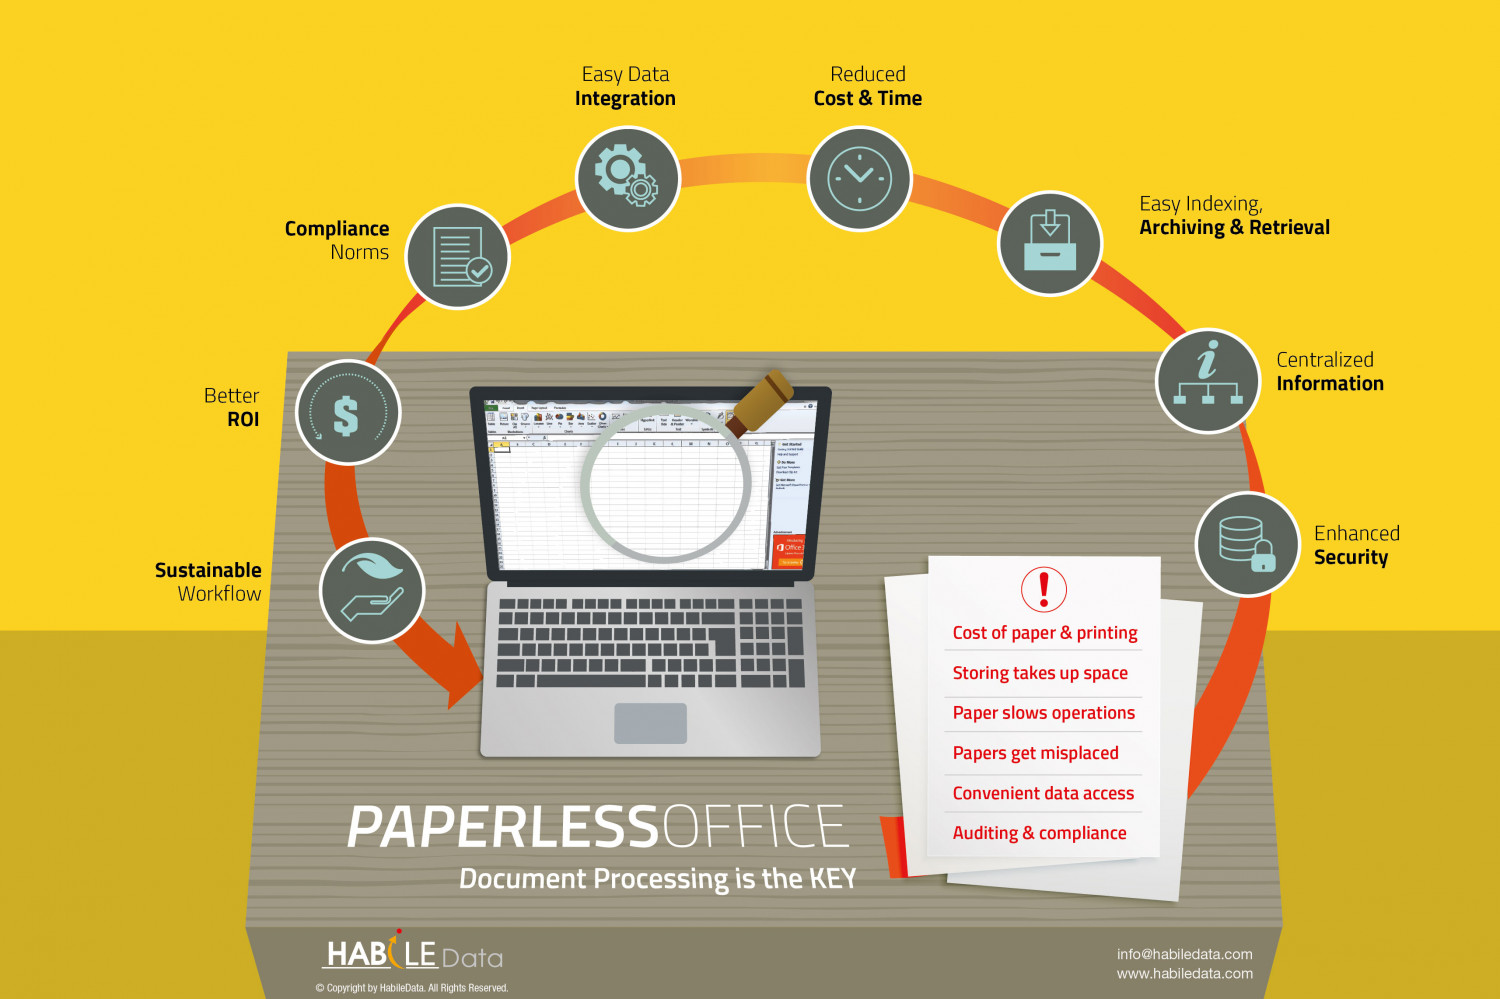 Document Processing is the KEY for Paperless Office Infographic